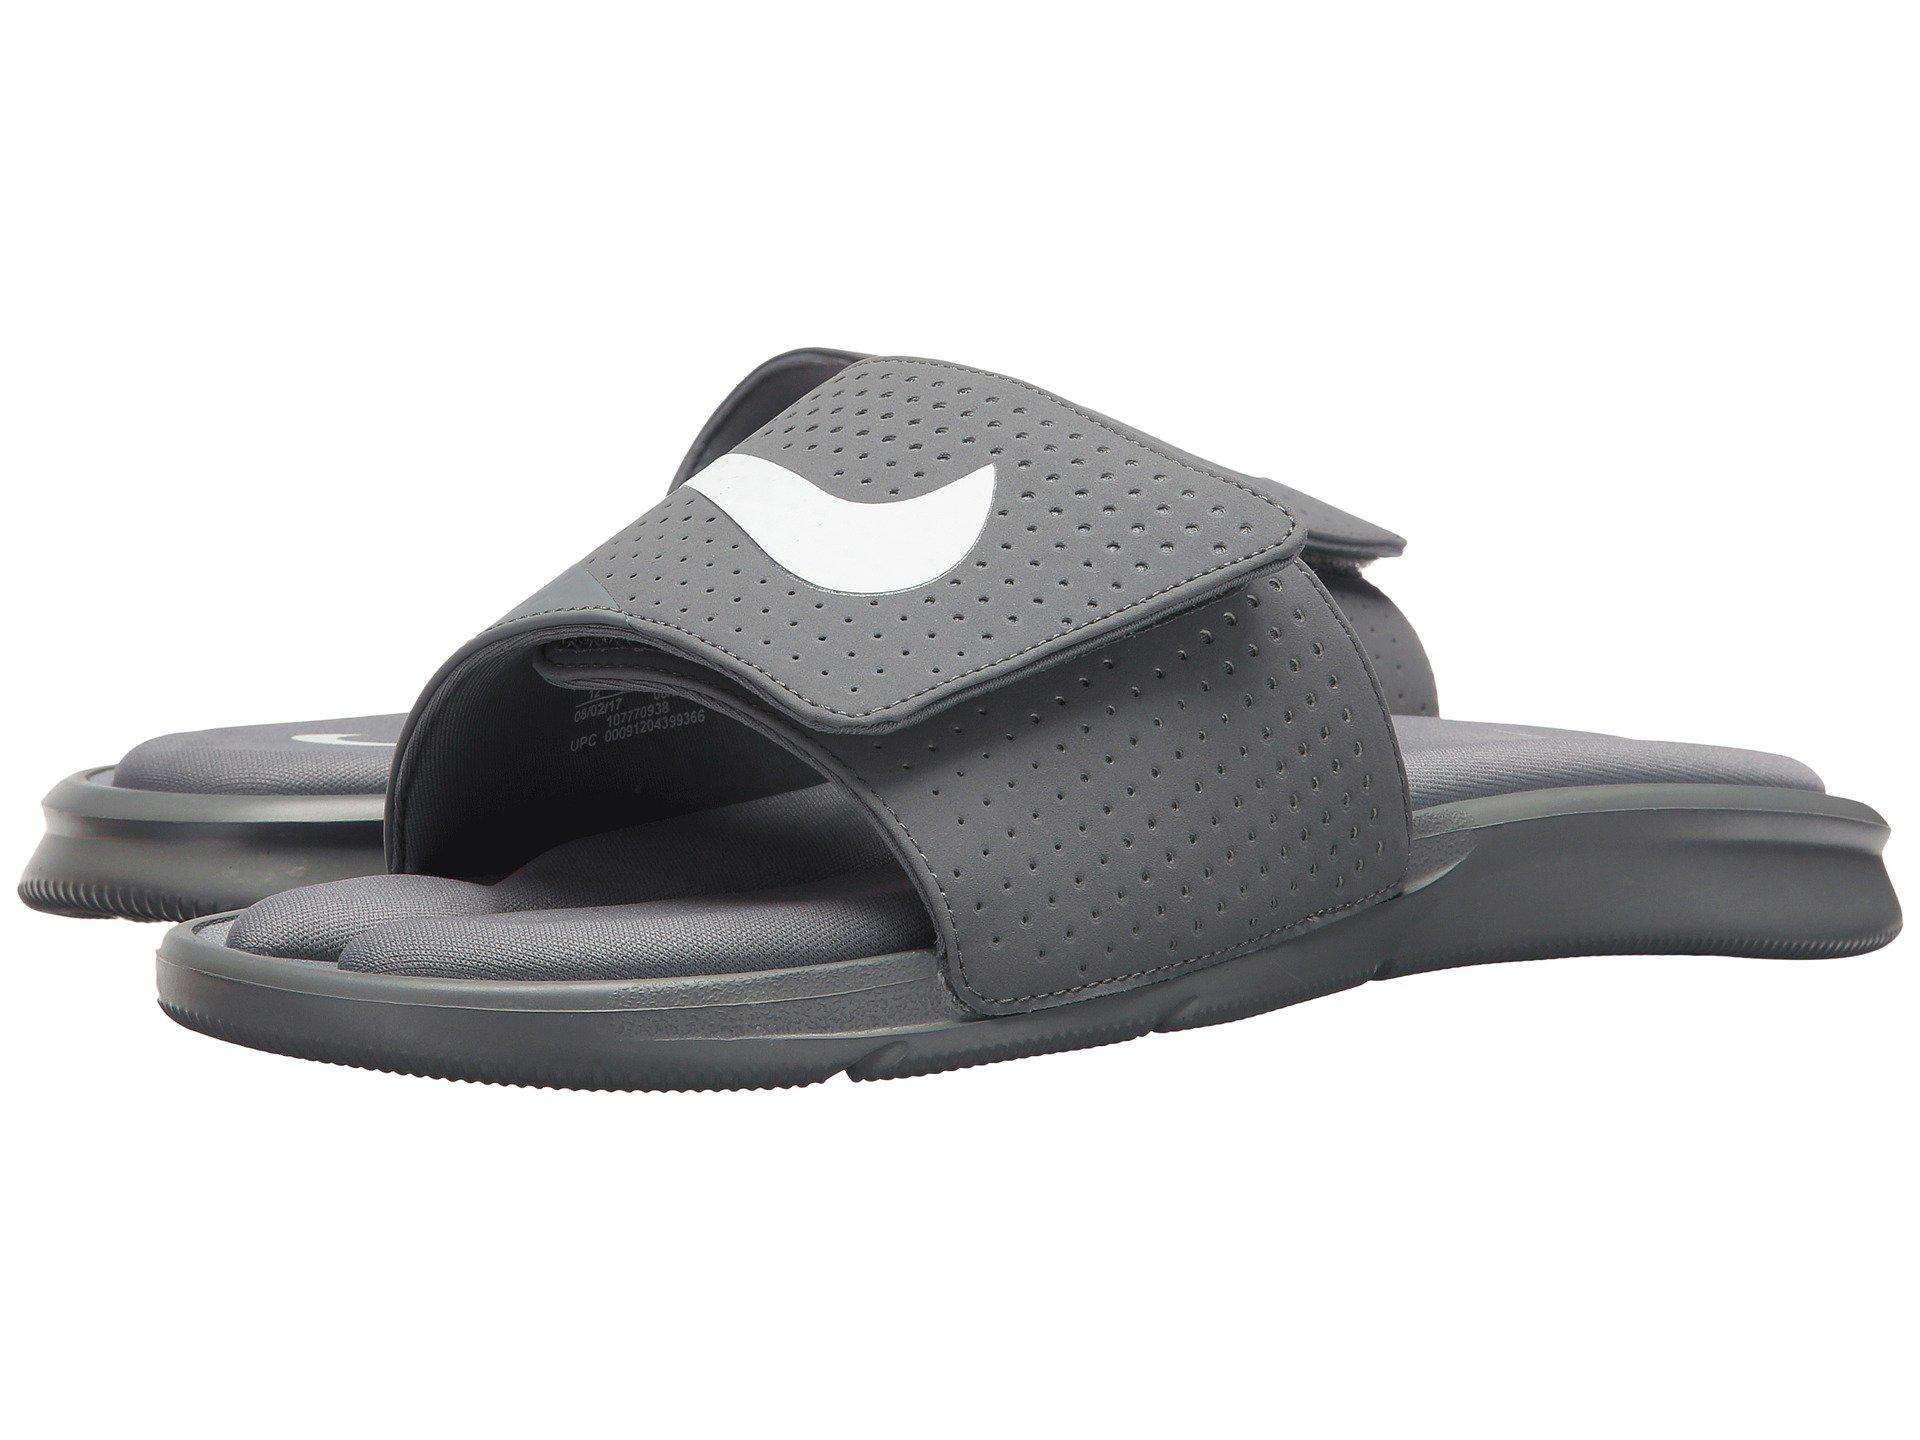 bdfa7b97d Lyst - Nike Ultra Comfort Slide Sandal in Gray for Men - Save 38%